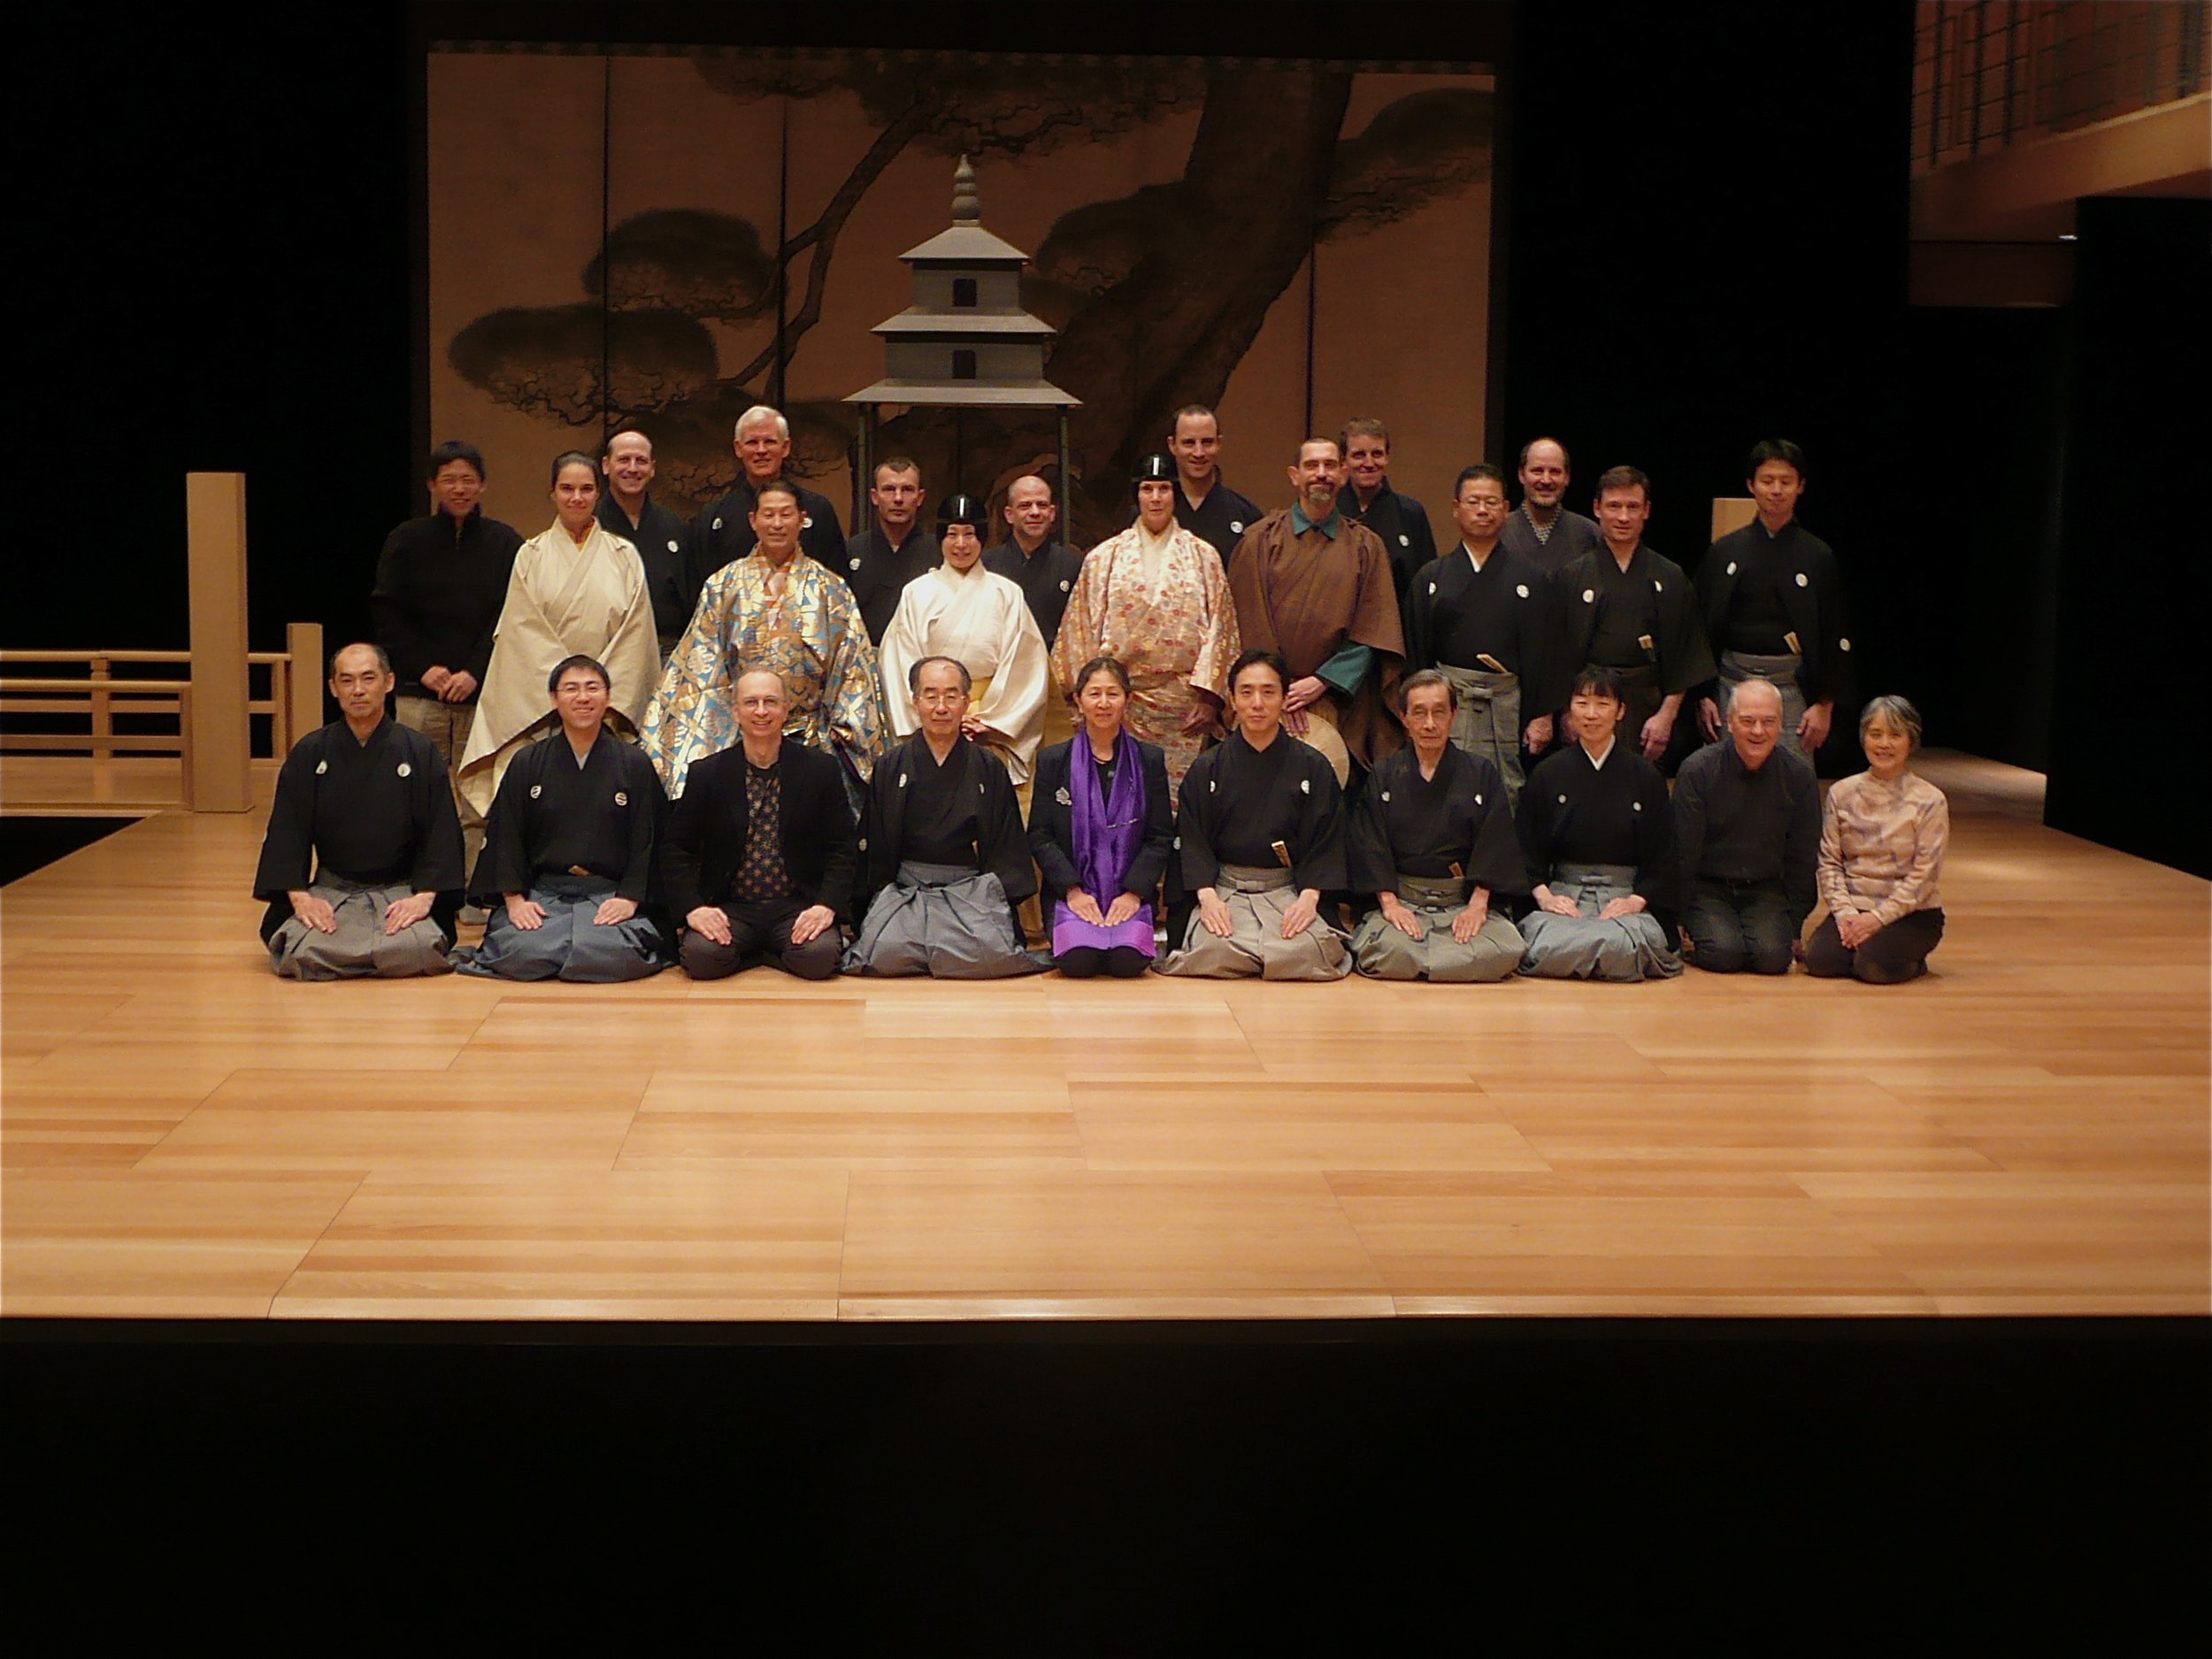 Pagoda Cast and Production Team : December 2009, following the last performance of  Pagoda  at the  Maison de la Culture du Japon , Paris.